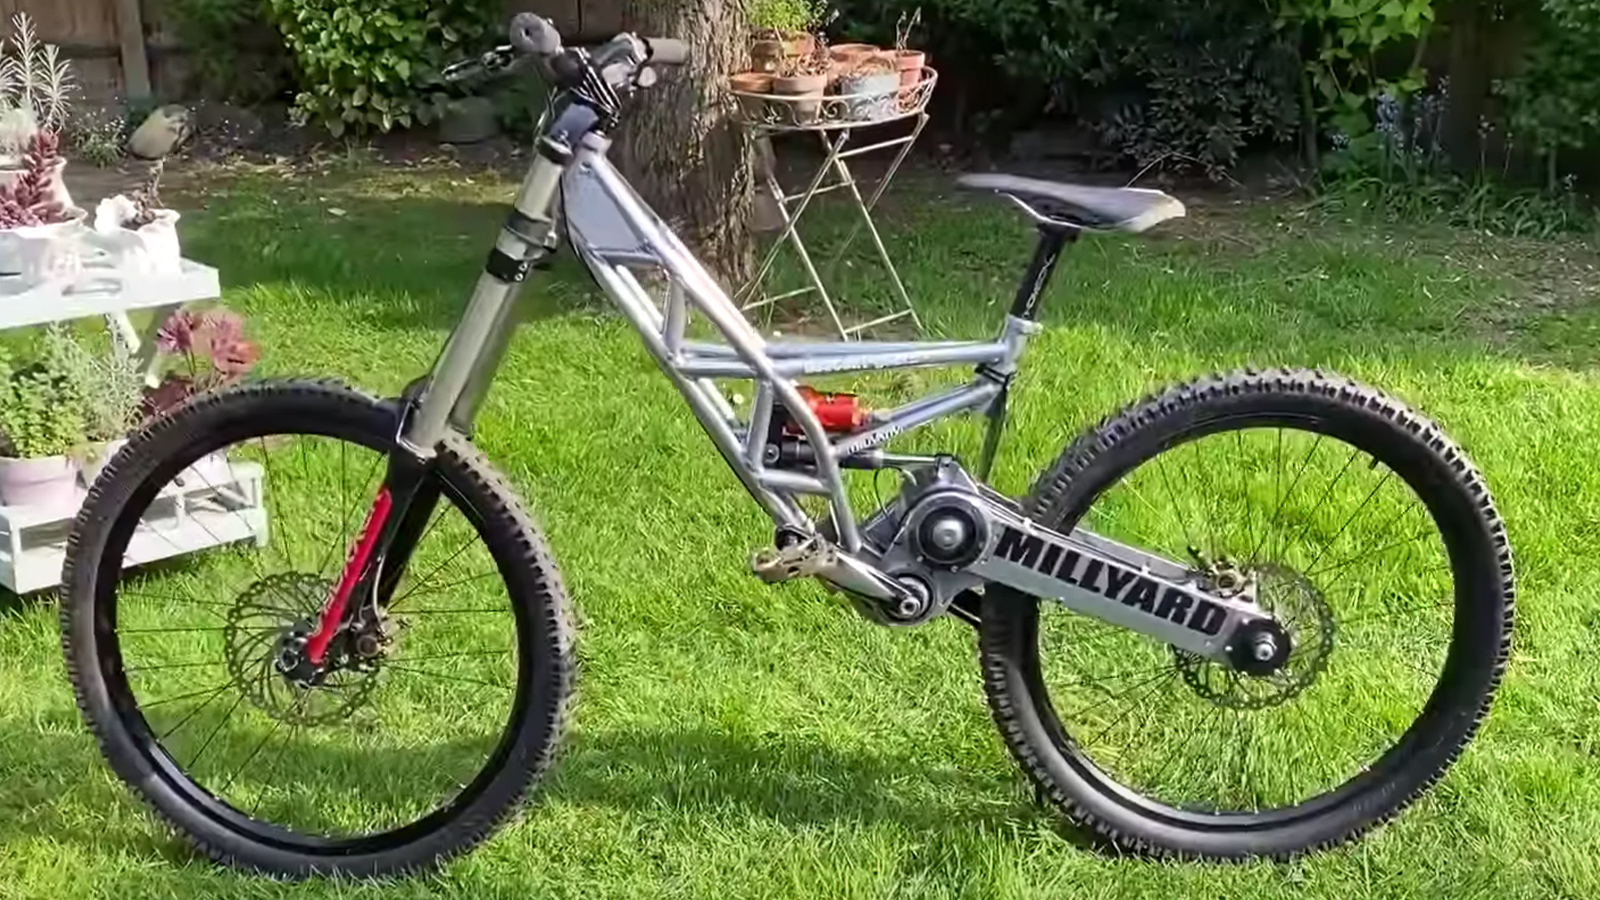 Millyard Racing's Downhill Bike: 13 Years Old, Still Ahead of Its Time